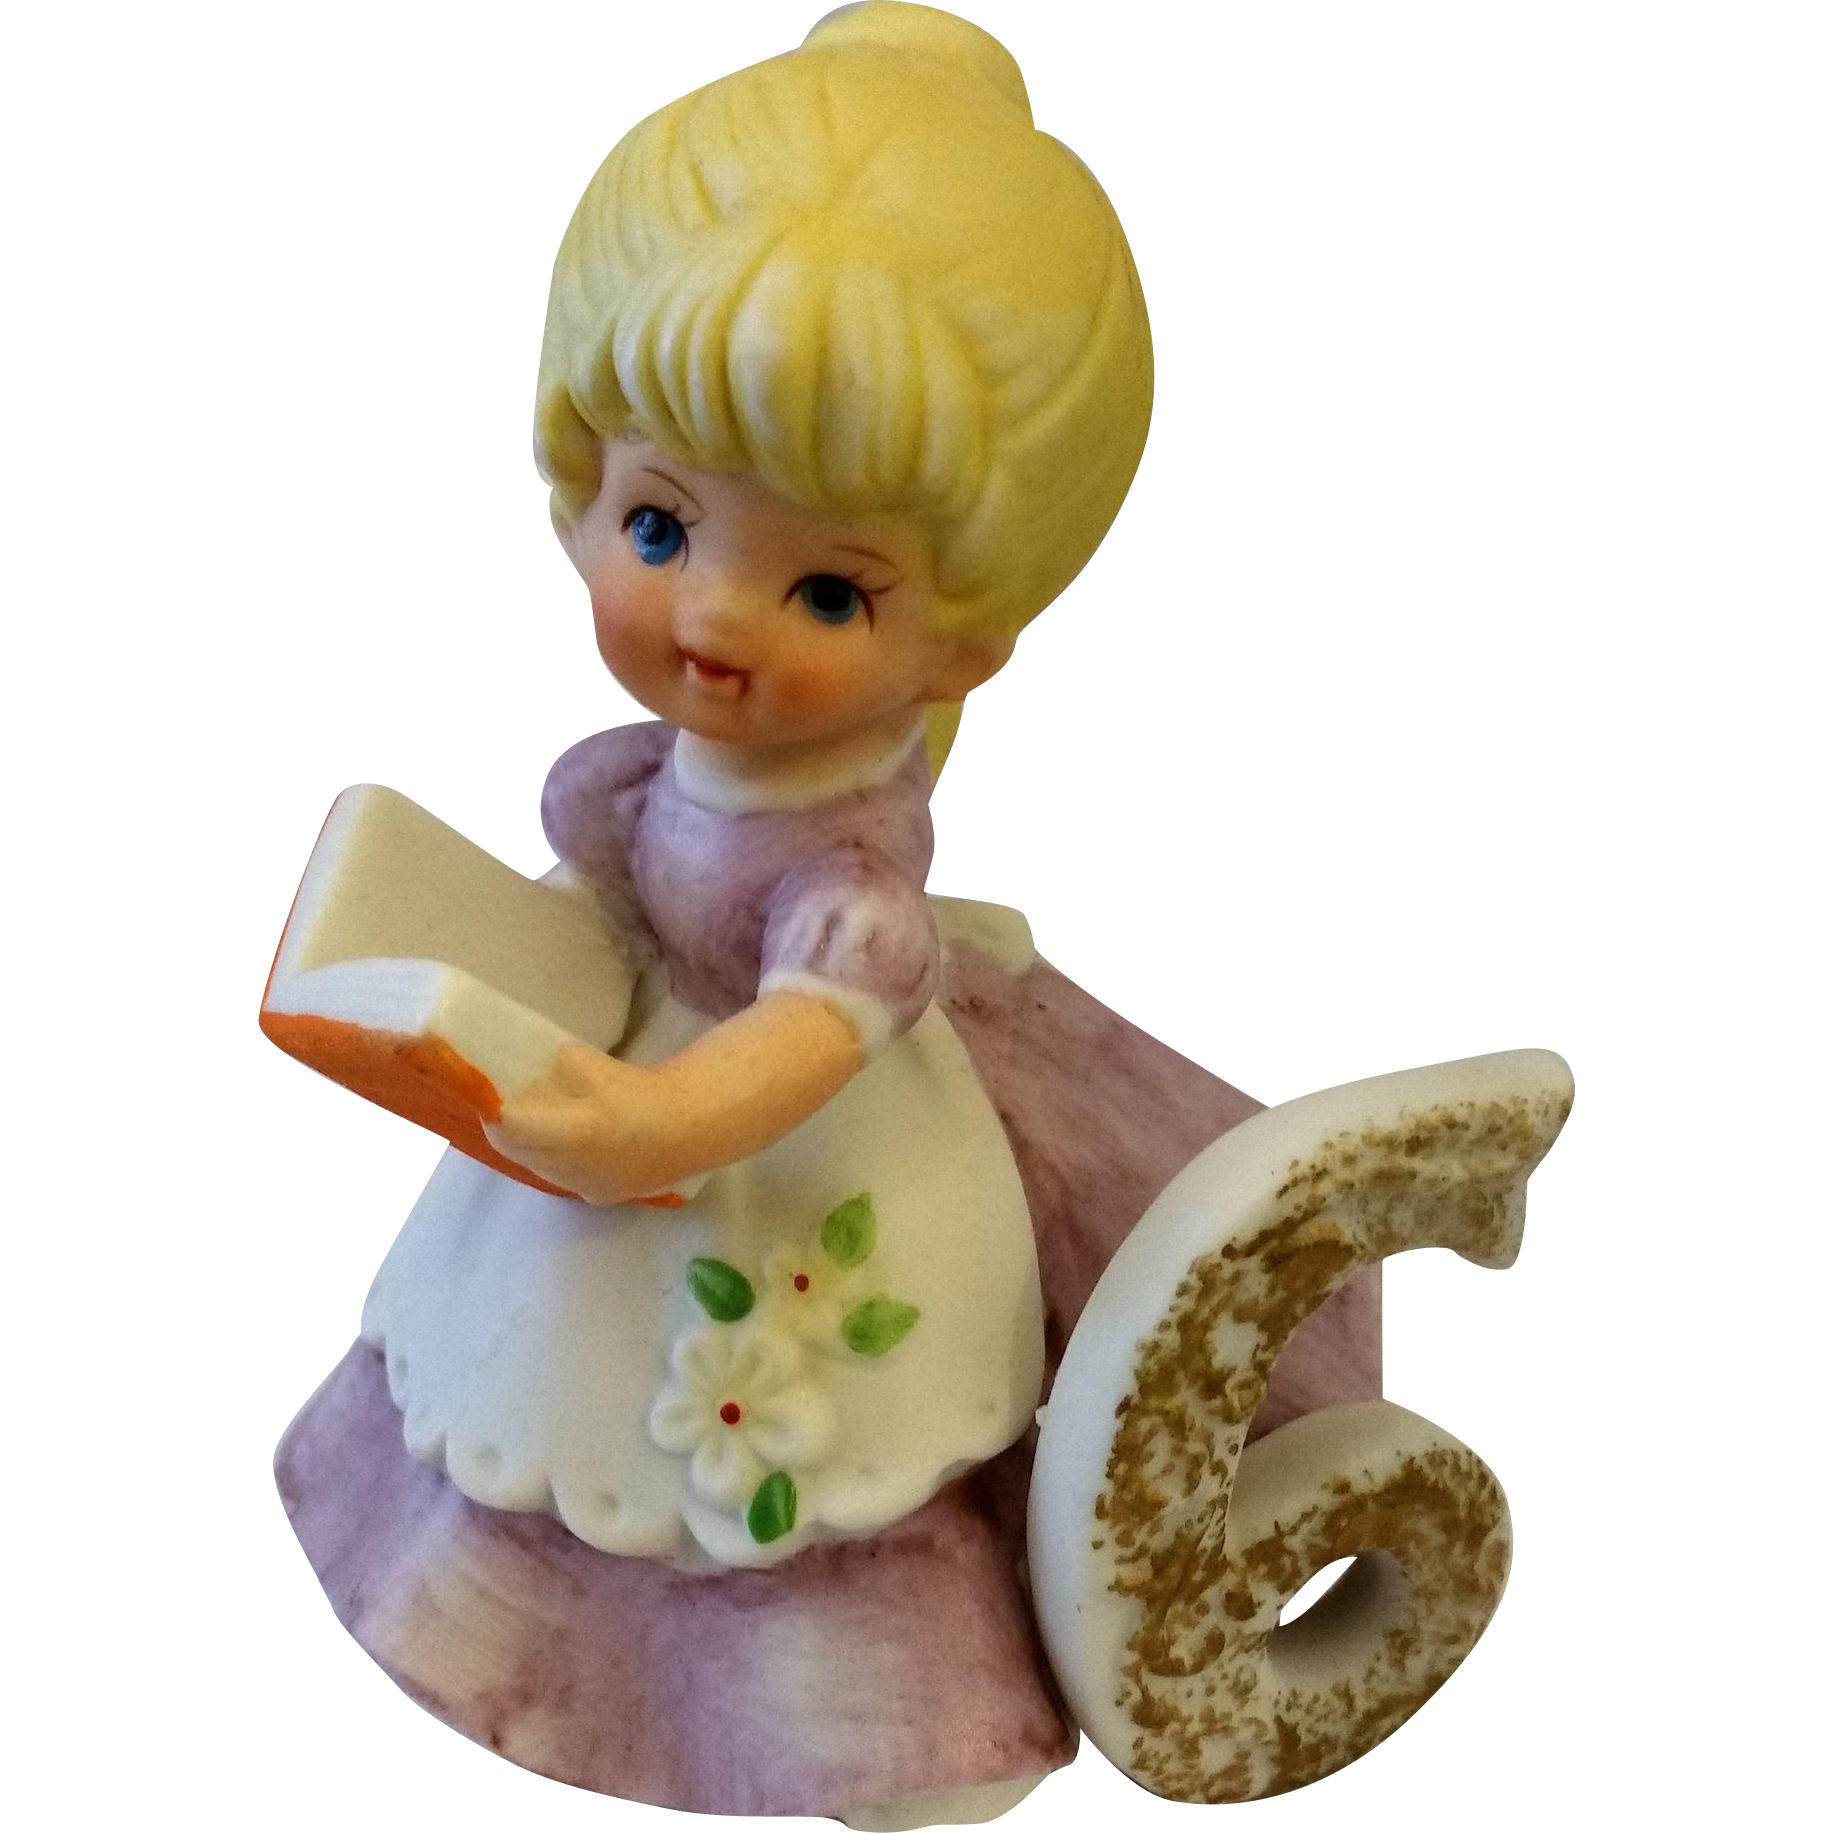 Kelvins Birthday Girl 6 Porcelain Figurine Blond Hair Holding Book